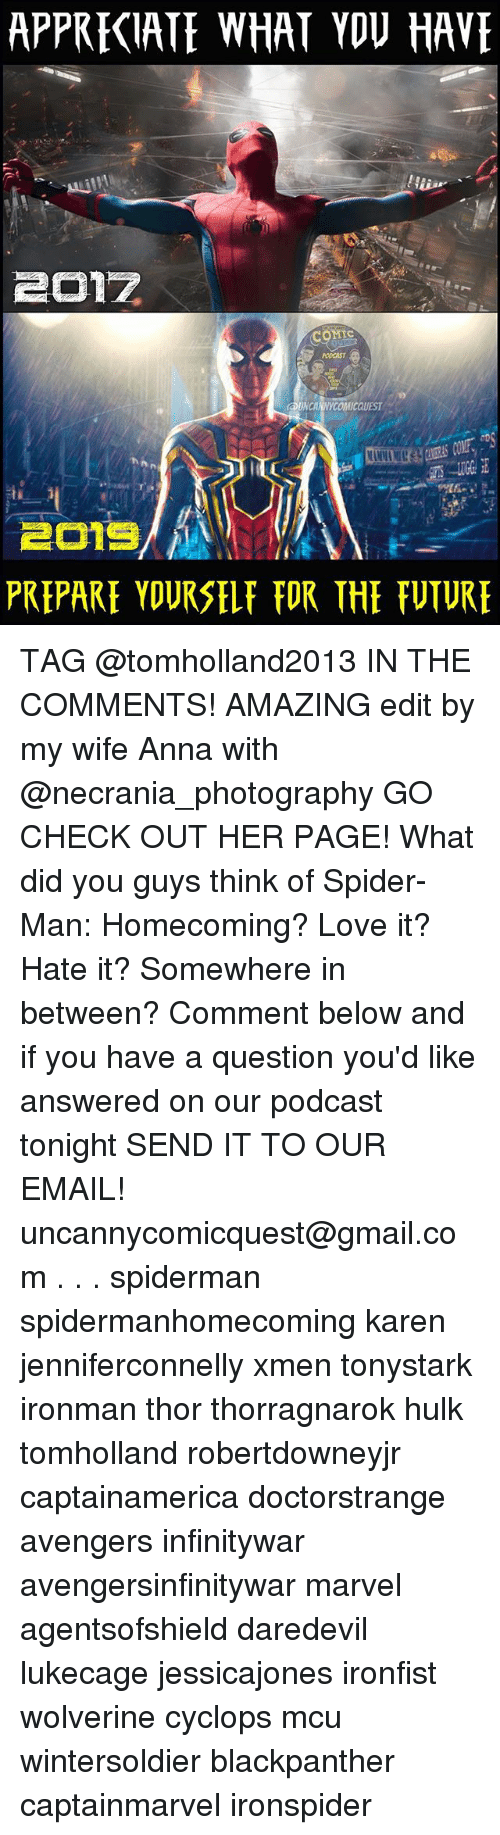 Anna, Love, and Memes: APPRECIATE WHAT VOV HAVE  COMIc  PODCAST  UNCANNYCOMICQUEST  PREPARE YDURSELF FOR THE FUTUR TAG @tomholland2013 IN THE COMMENTS! AMAZING edit by my wife Anna with @necrania_photography GO CHECK OUT HER PAGE! What did you guys think of Spider-Man: Homecoming? Love it? Hate it? Somewhere in between? Comment below and if you have a question you'd like answered on our podcast tonight SEND IT TO OUR EMAIL! uncannycomicquest@gmail.com . . . spiderman spidermanhomecoming karen jenniferconnelly xmen tonystark ironman thor thorragnarok hulk tomholland robertdowneyjr captainamerica doctorstrange avengers infinitywar avengersinfinitywar marvel agentsofshield daredevil lukecage jessicajones ironfist wolverine cyclops mcu wintersoldier blackpanther captainmarvel ironspider